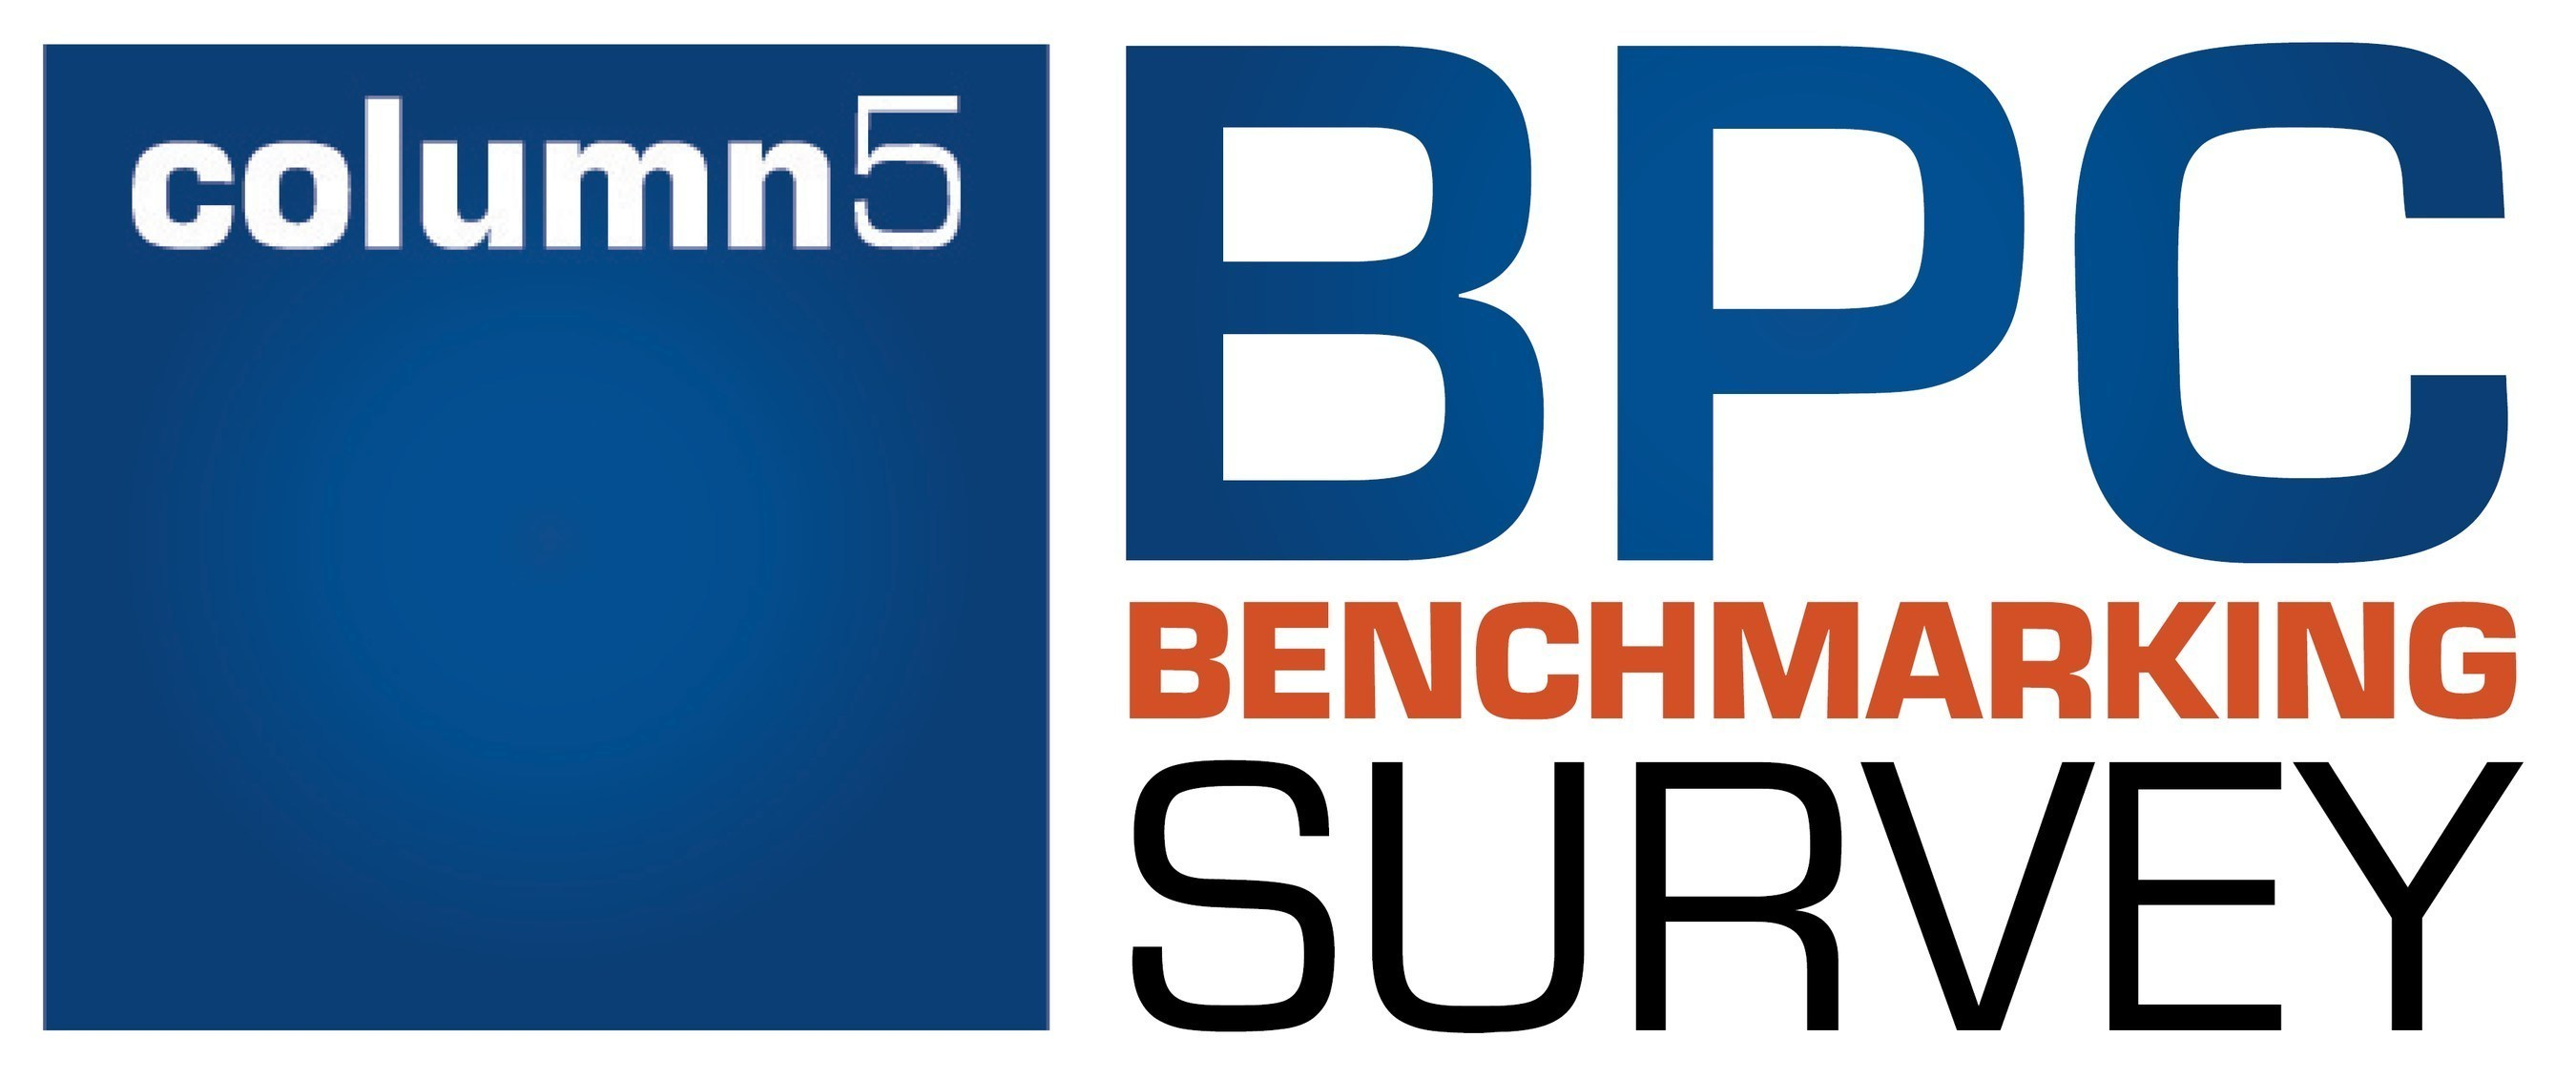 Take the Column5 BPC Benchmarking Survey!